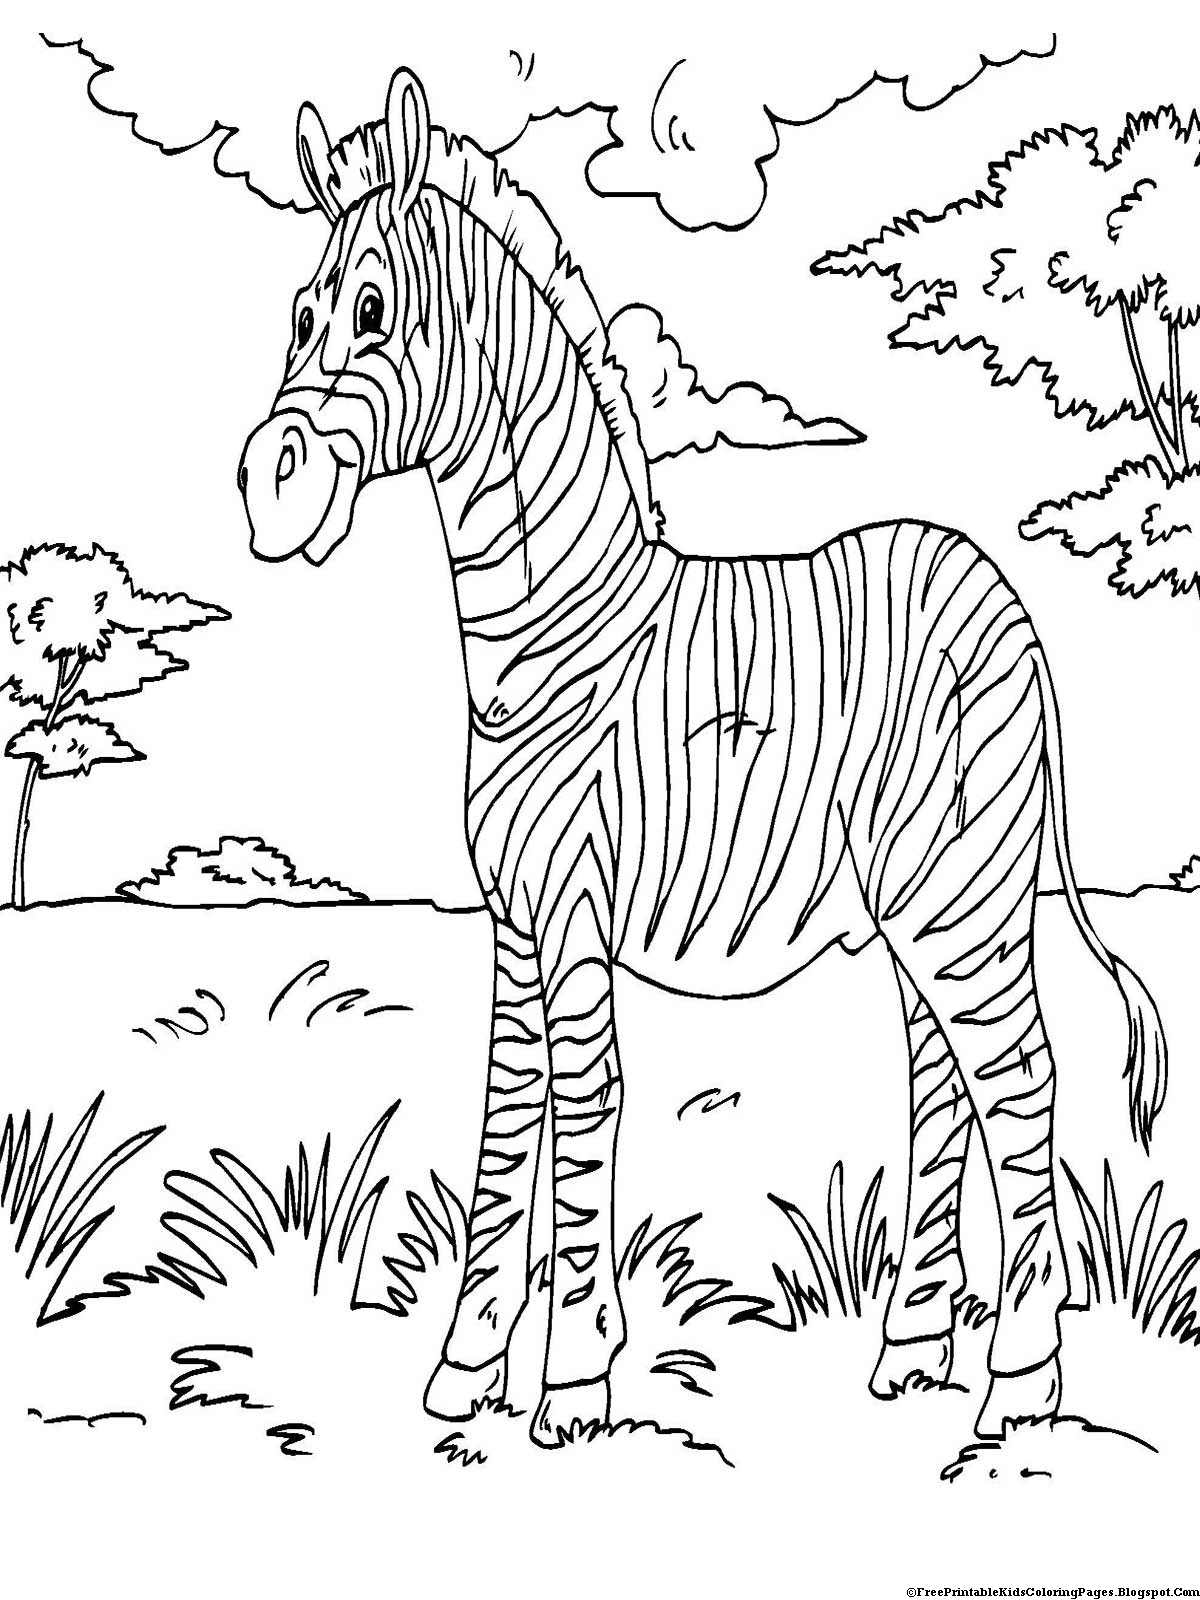 coloring printable free free printable tangled coloring pages for kids cool2bkids printable coloring free